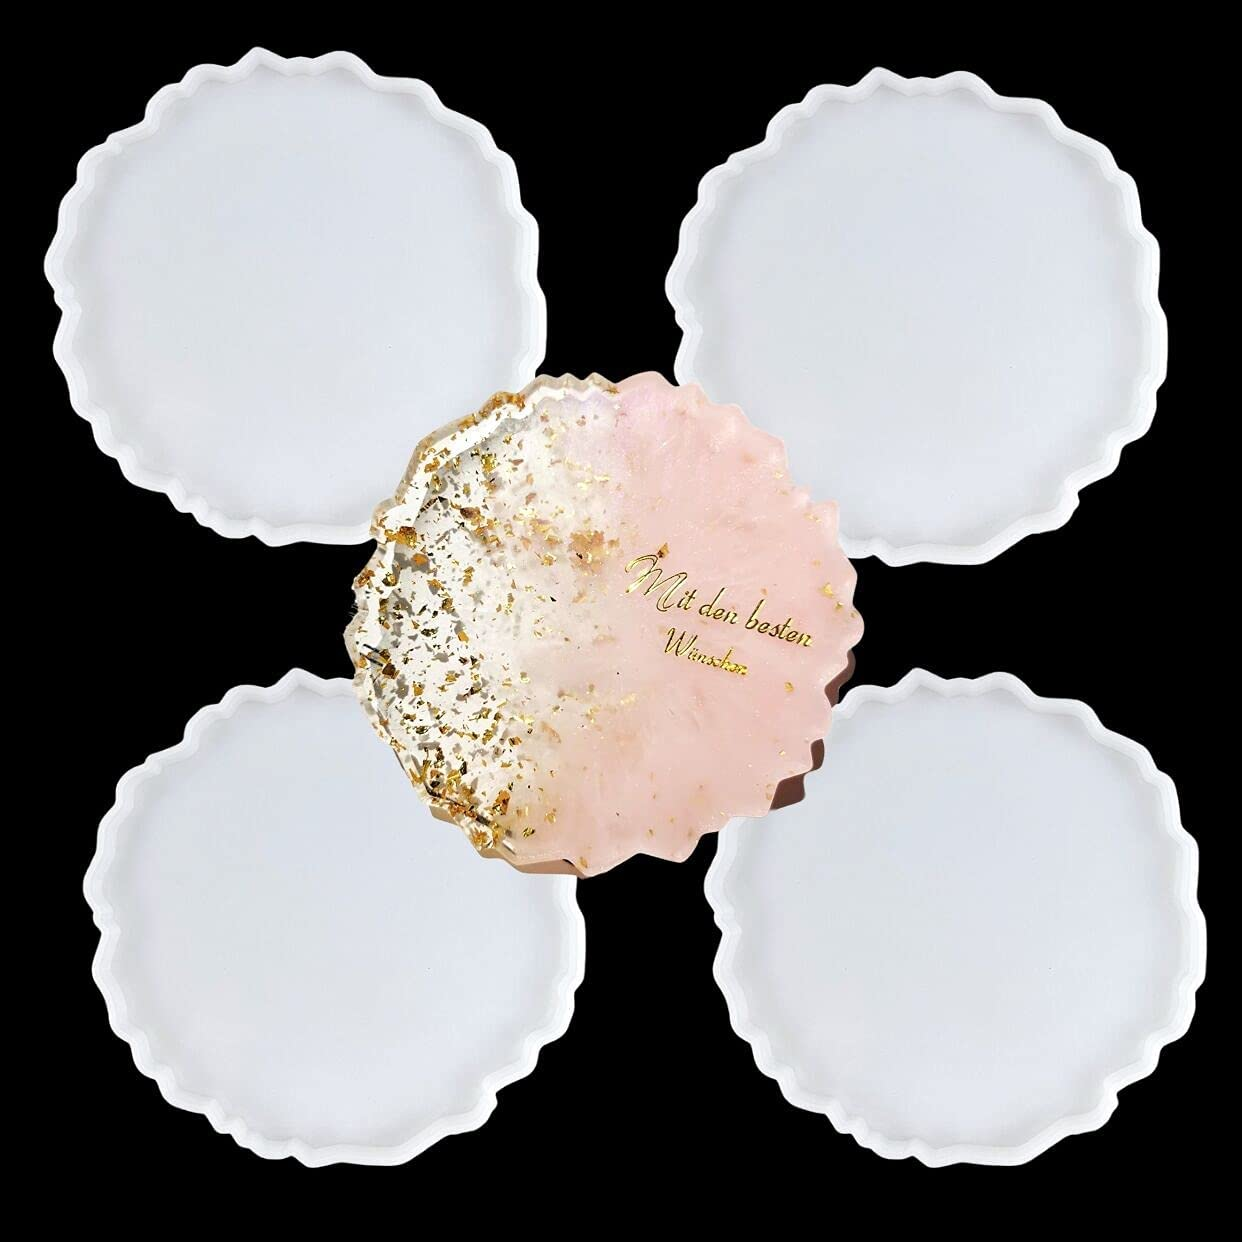 Resin Coaster 2021 autumn and 5 ☆ popular winter new Molds 4 Geode Pcs Silicone for